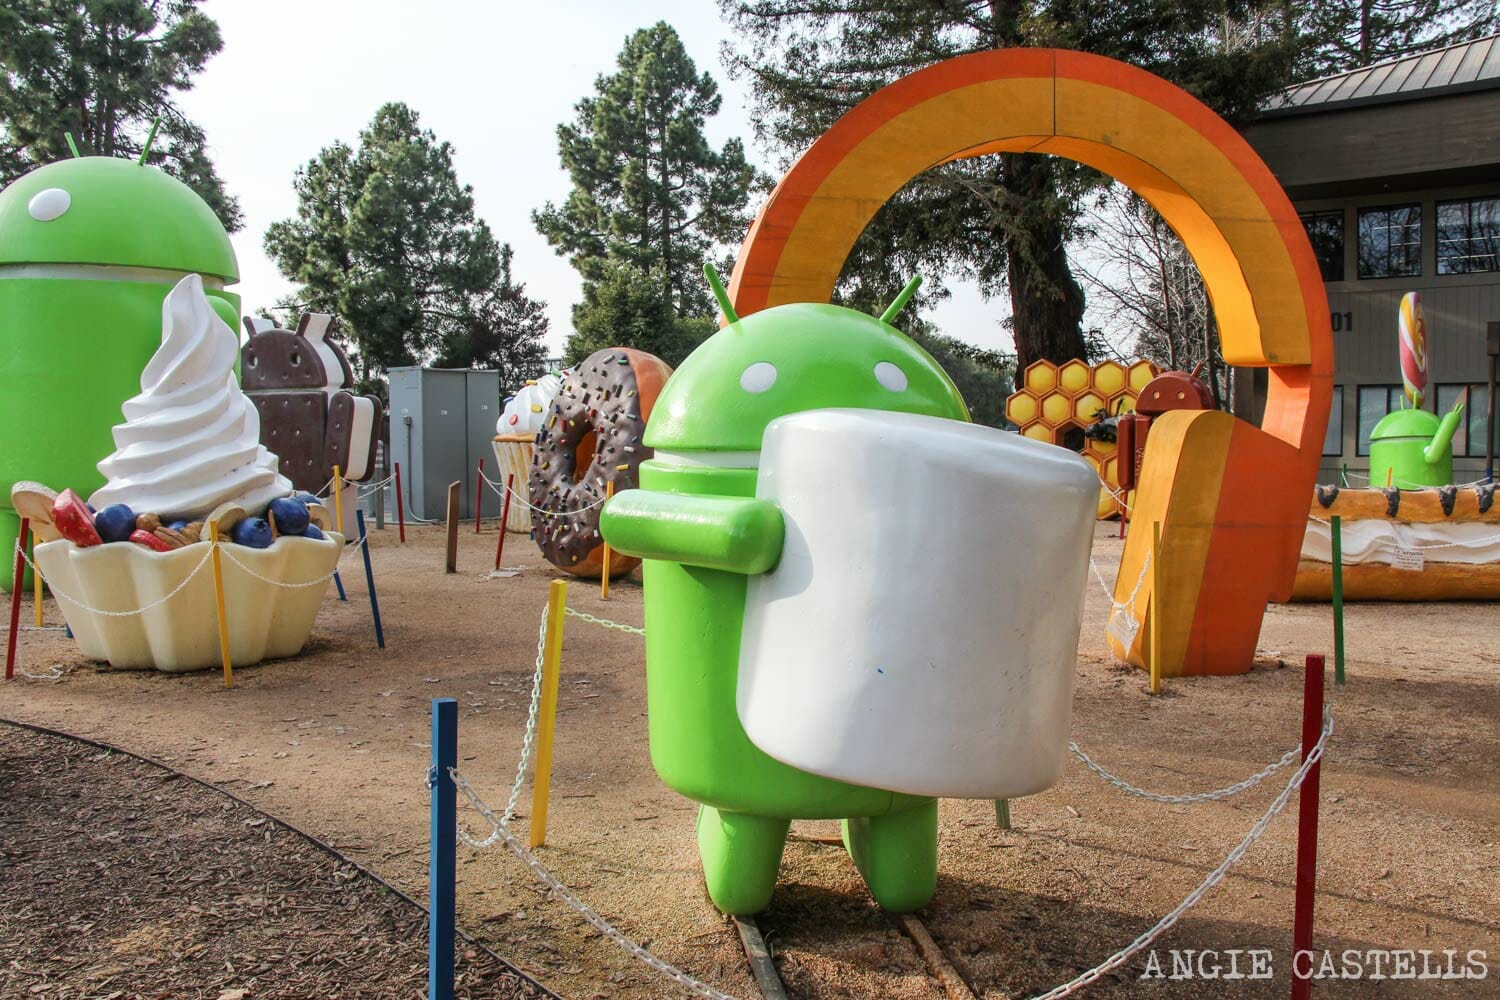 Ruta por Silicon Valley, California - Visitar Google Android